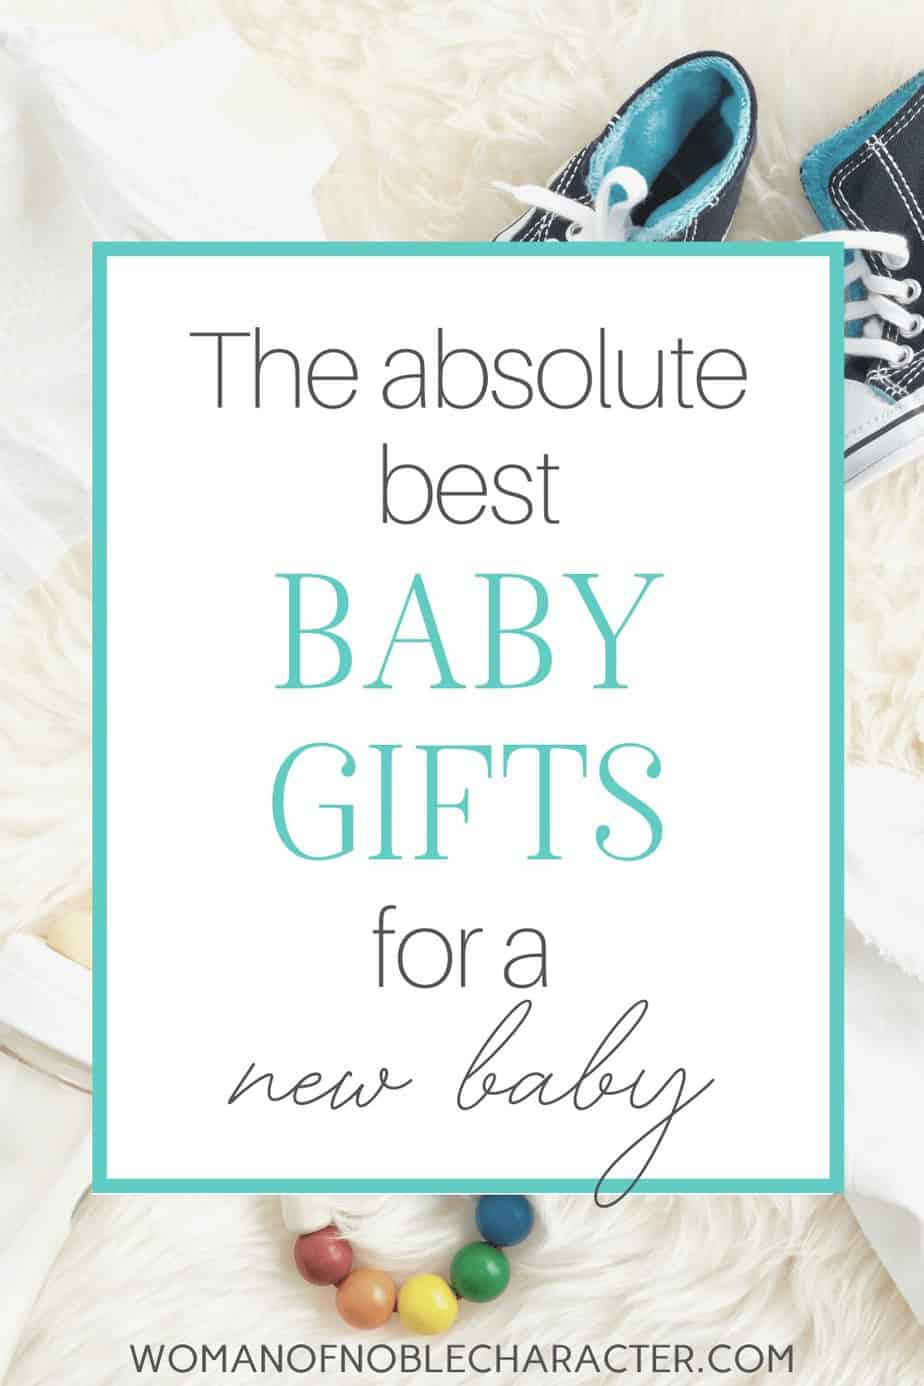 Get your list of the very best baby gifts for that new arrival. These are the perfect ideas for newborns and infants.